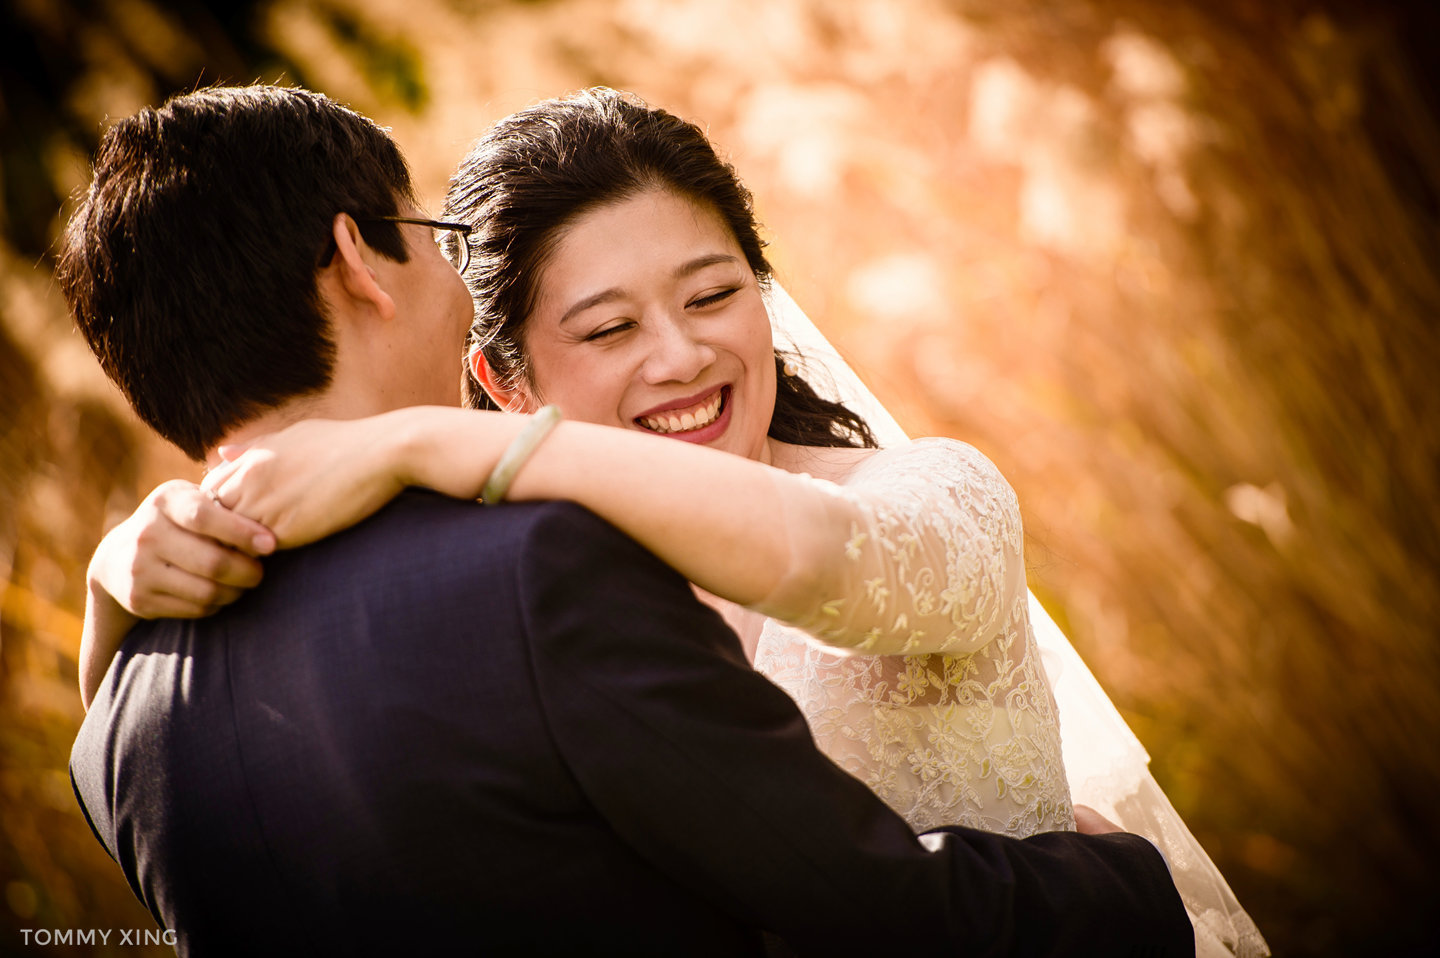 San Francisco Wedding Photography Valley Presbyterian Church WEDDING Tommy Xing Photography 洛杉矶旧金山婚礼婚纱照摄影师046.jpg